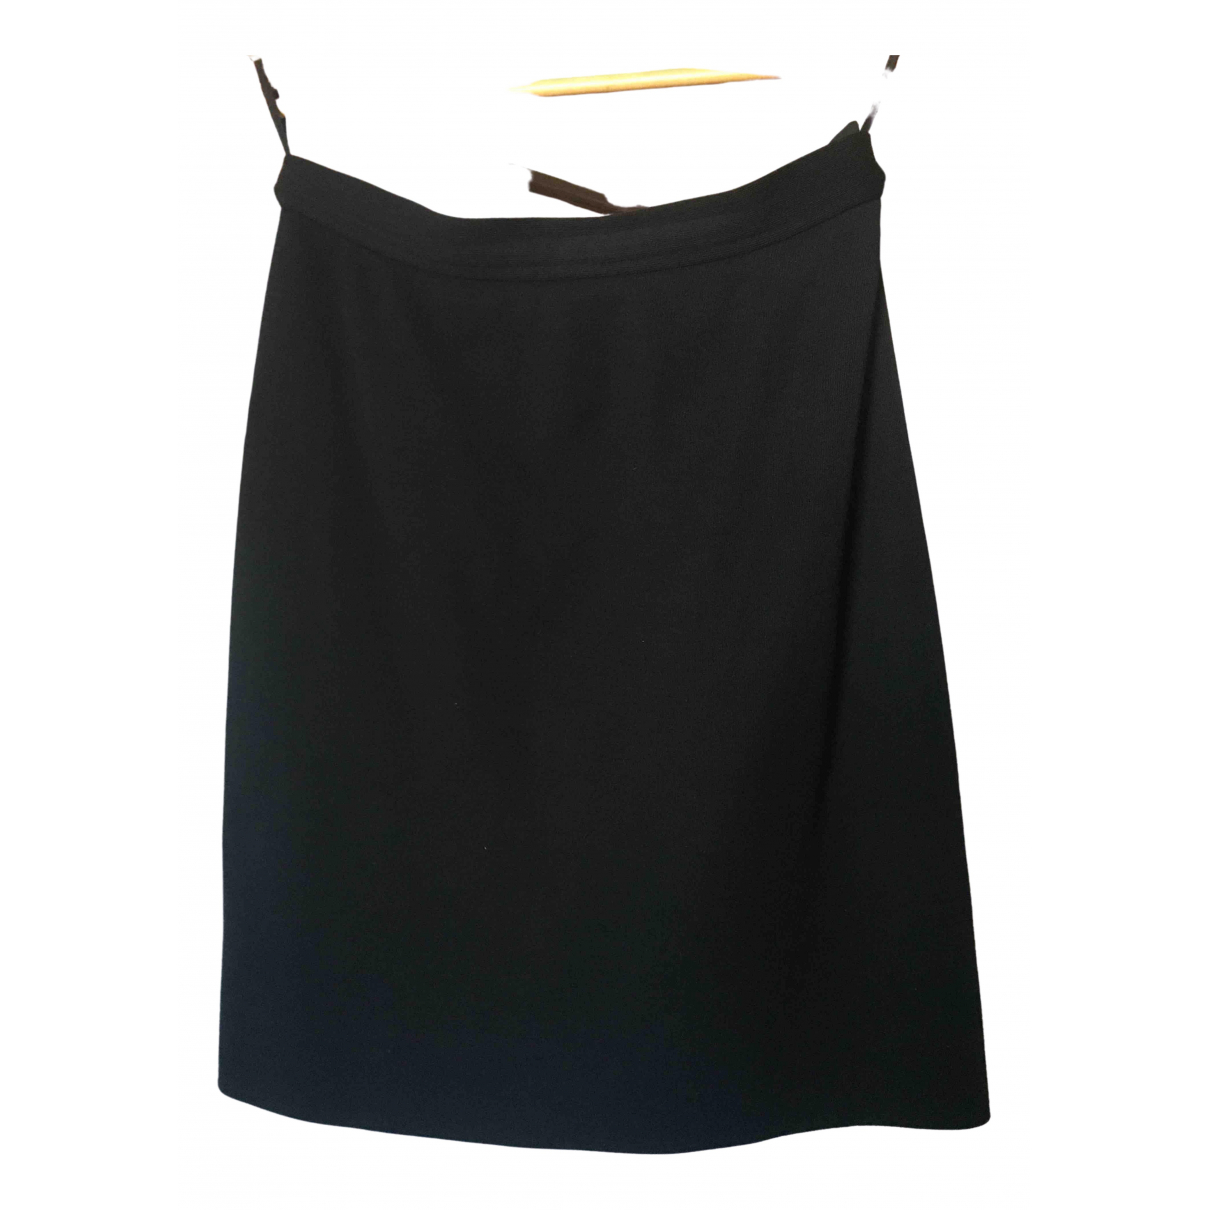 Yves Saint Laurent \N Black Wool skirt for Women 44 FR